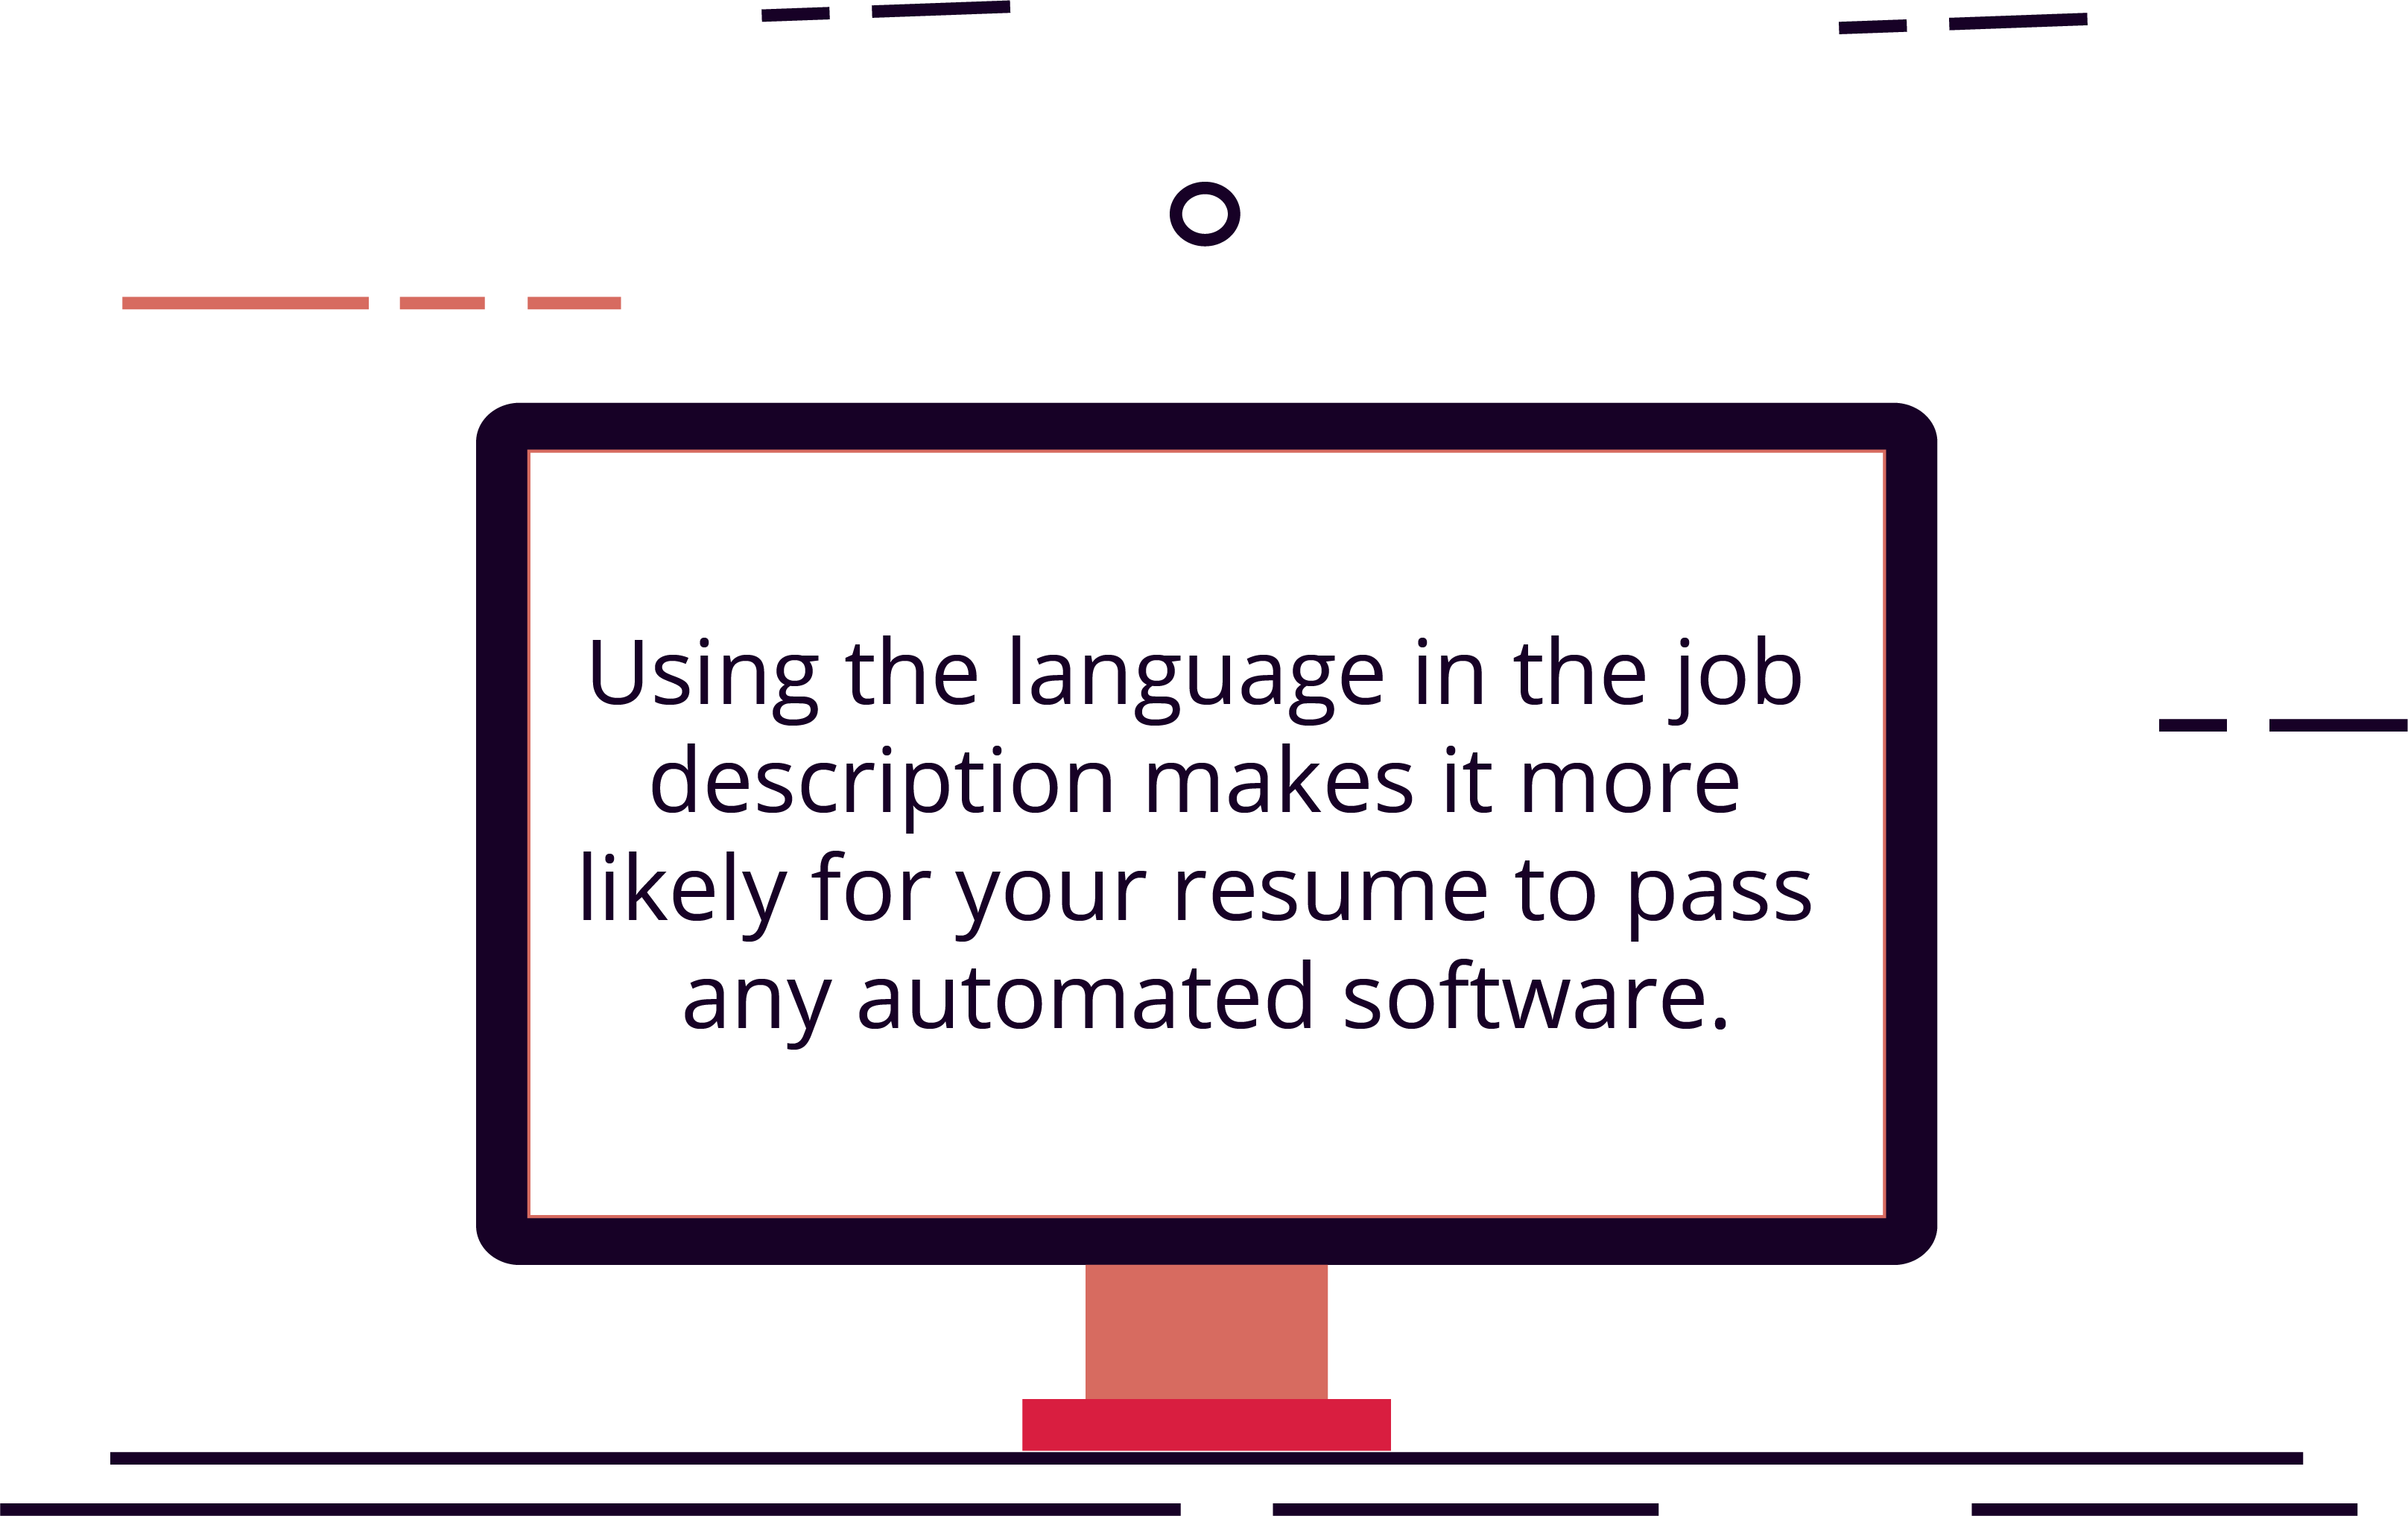 Using Language in the Job Description Will Help Your Resume Pass Software